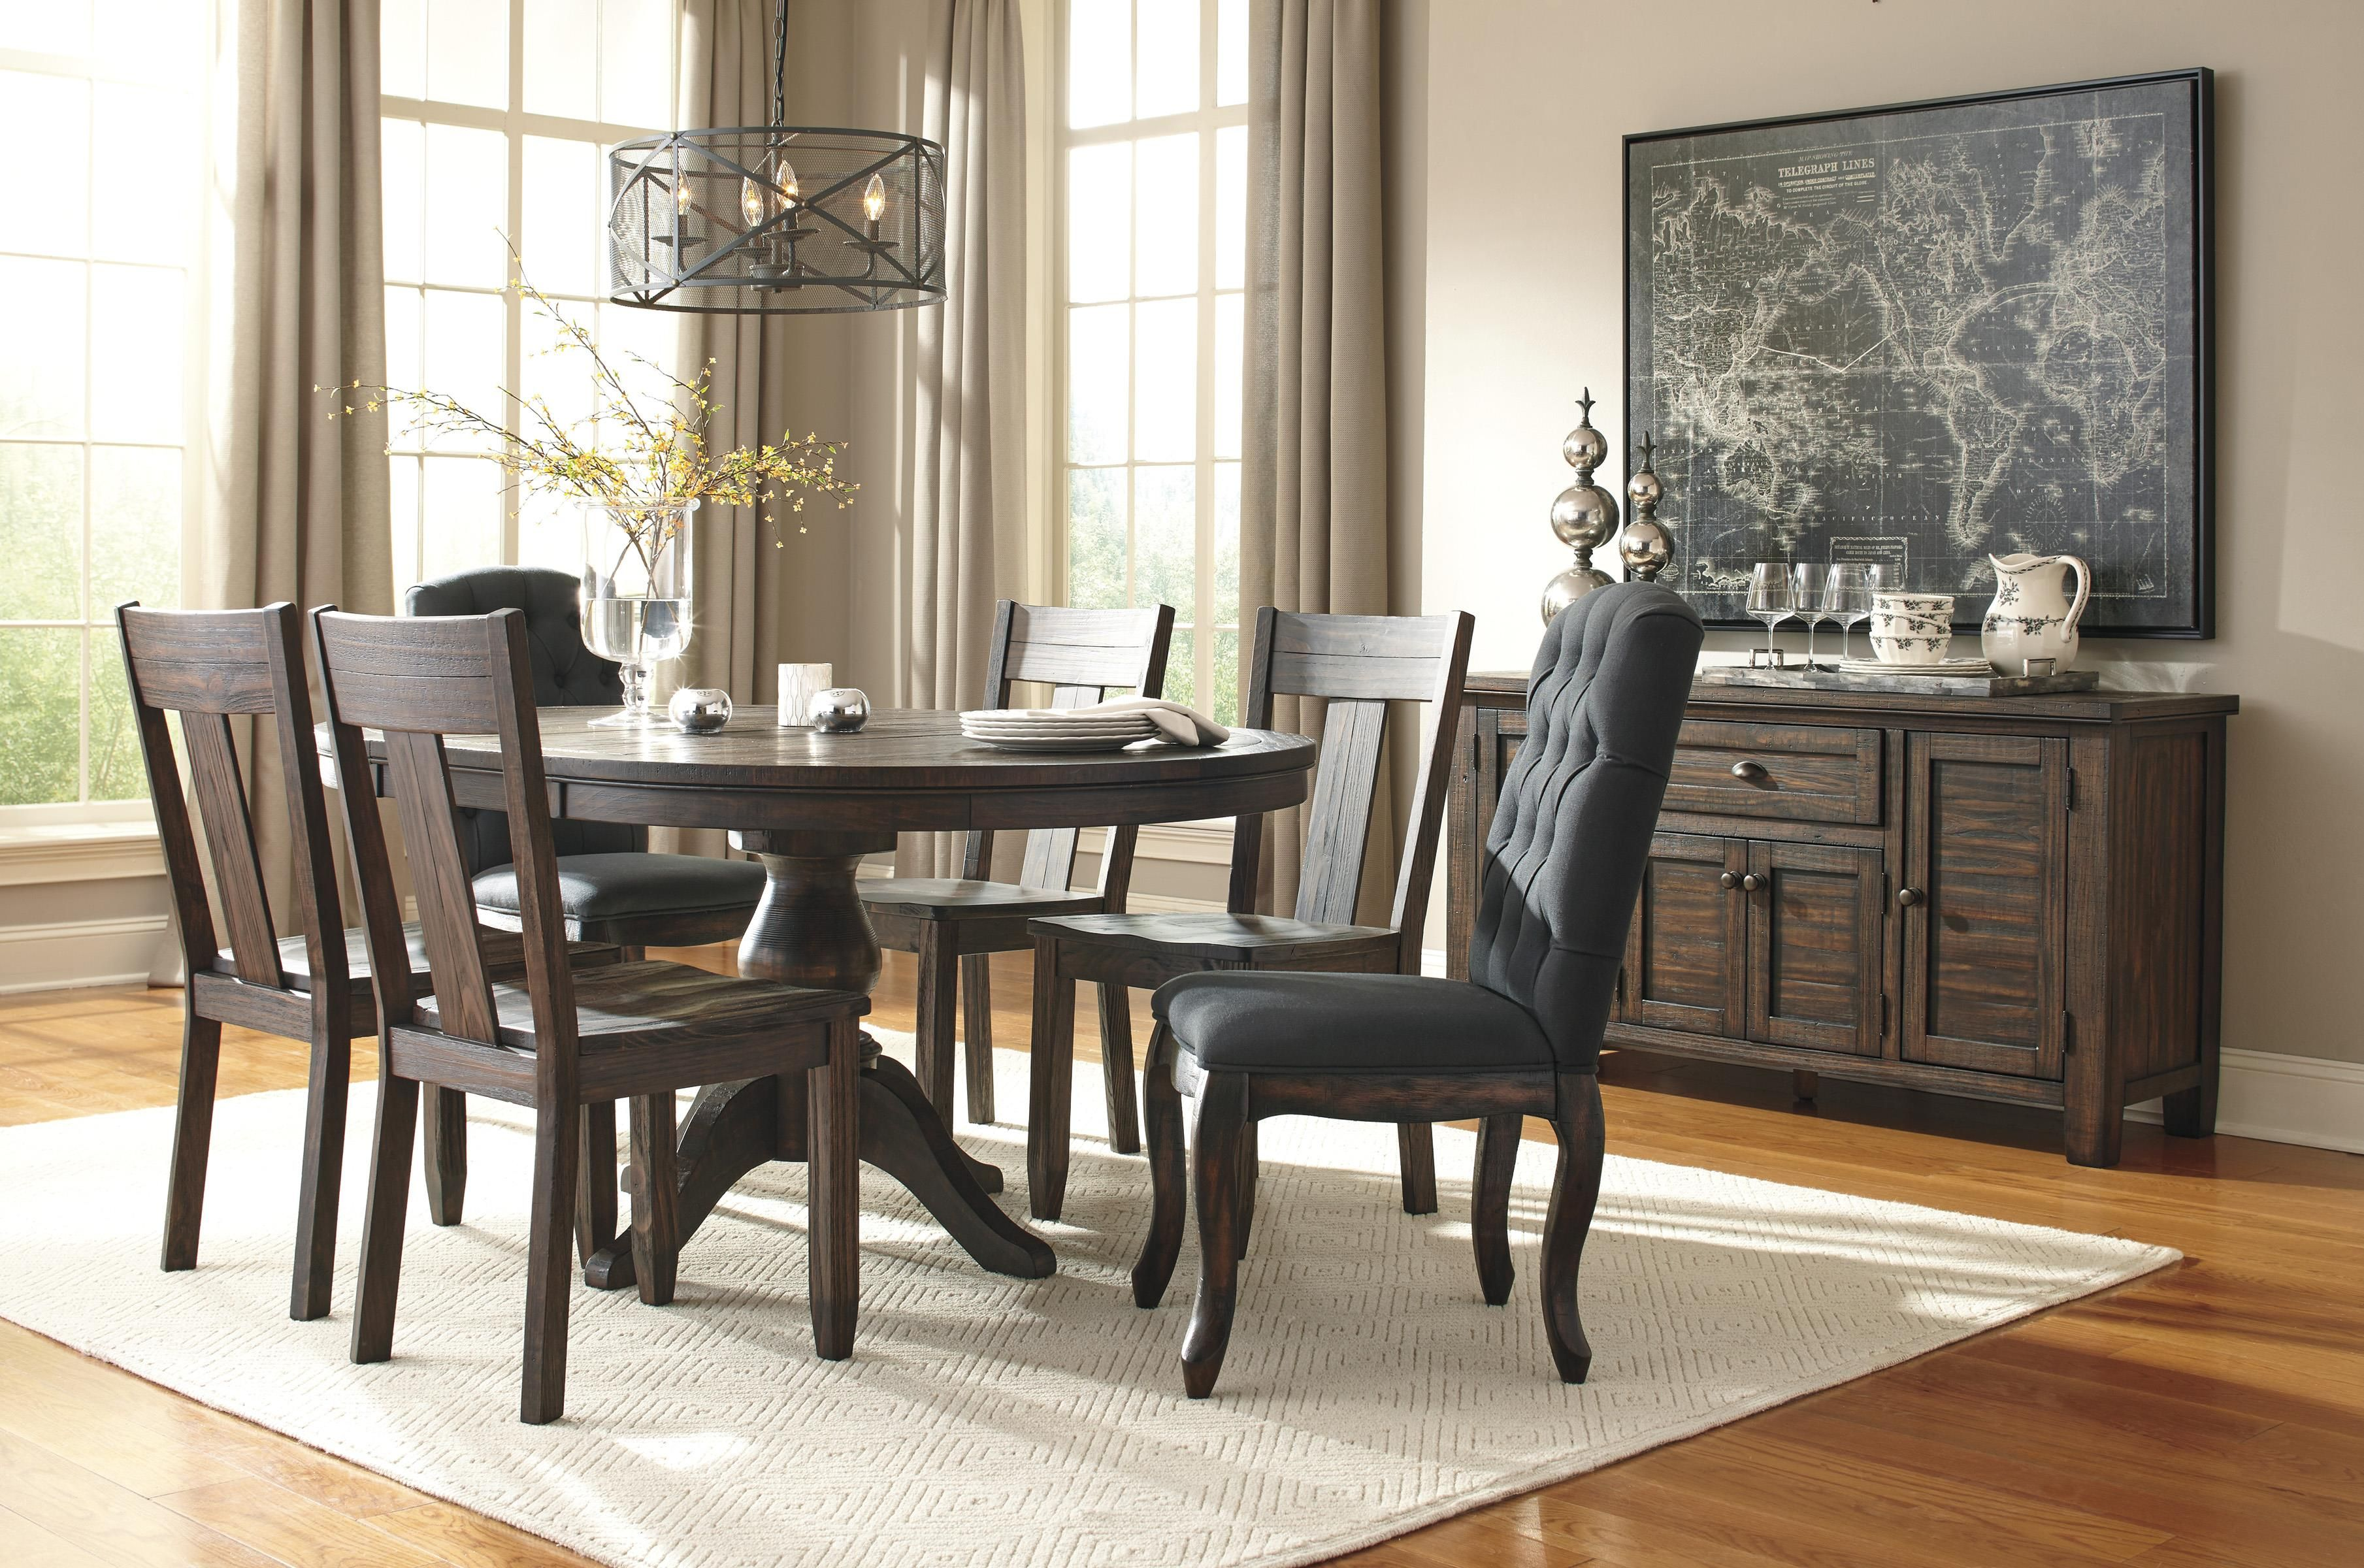 Create A Welcoming Dining Area With Your Choice Of The Pieces Available From This Collection Featuring All Solid Pine Construction In Rustic And